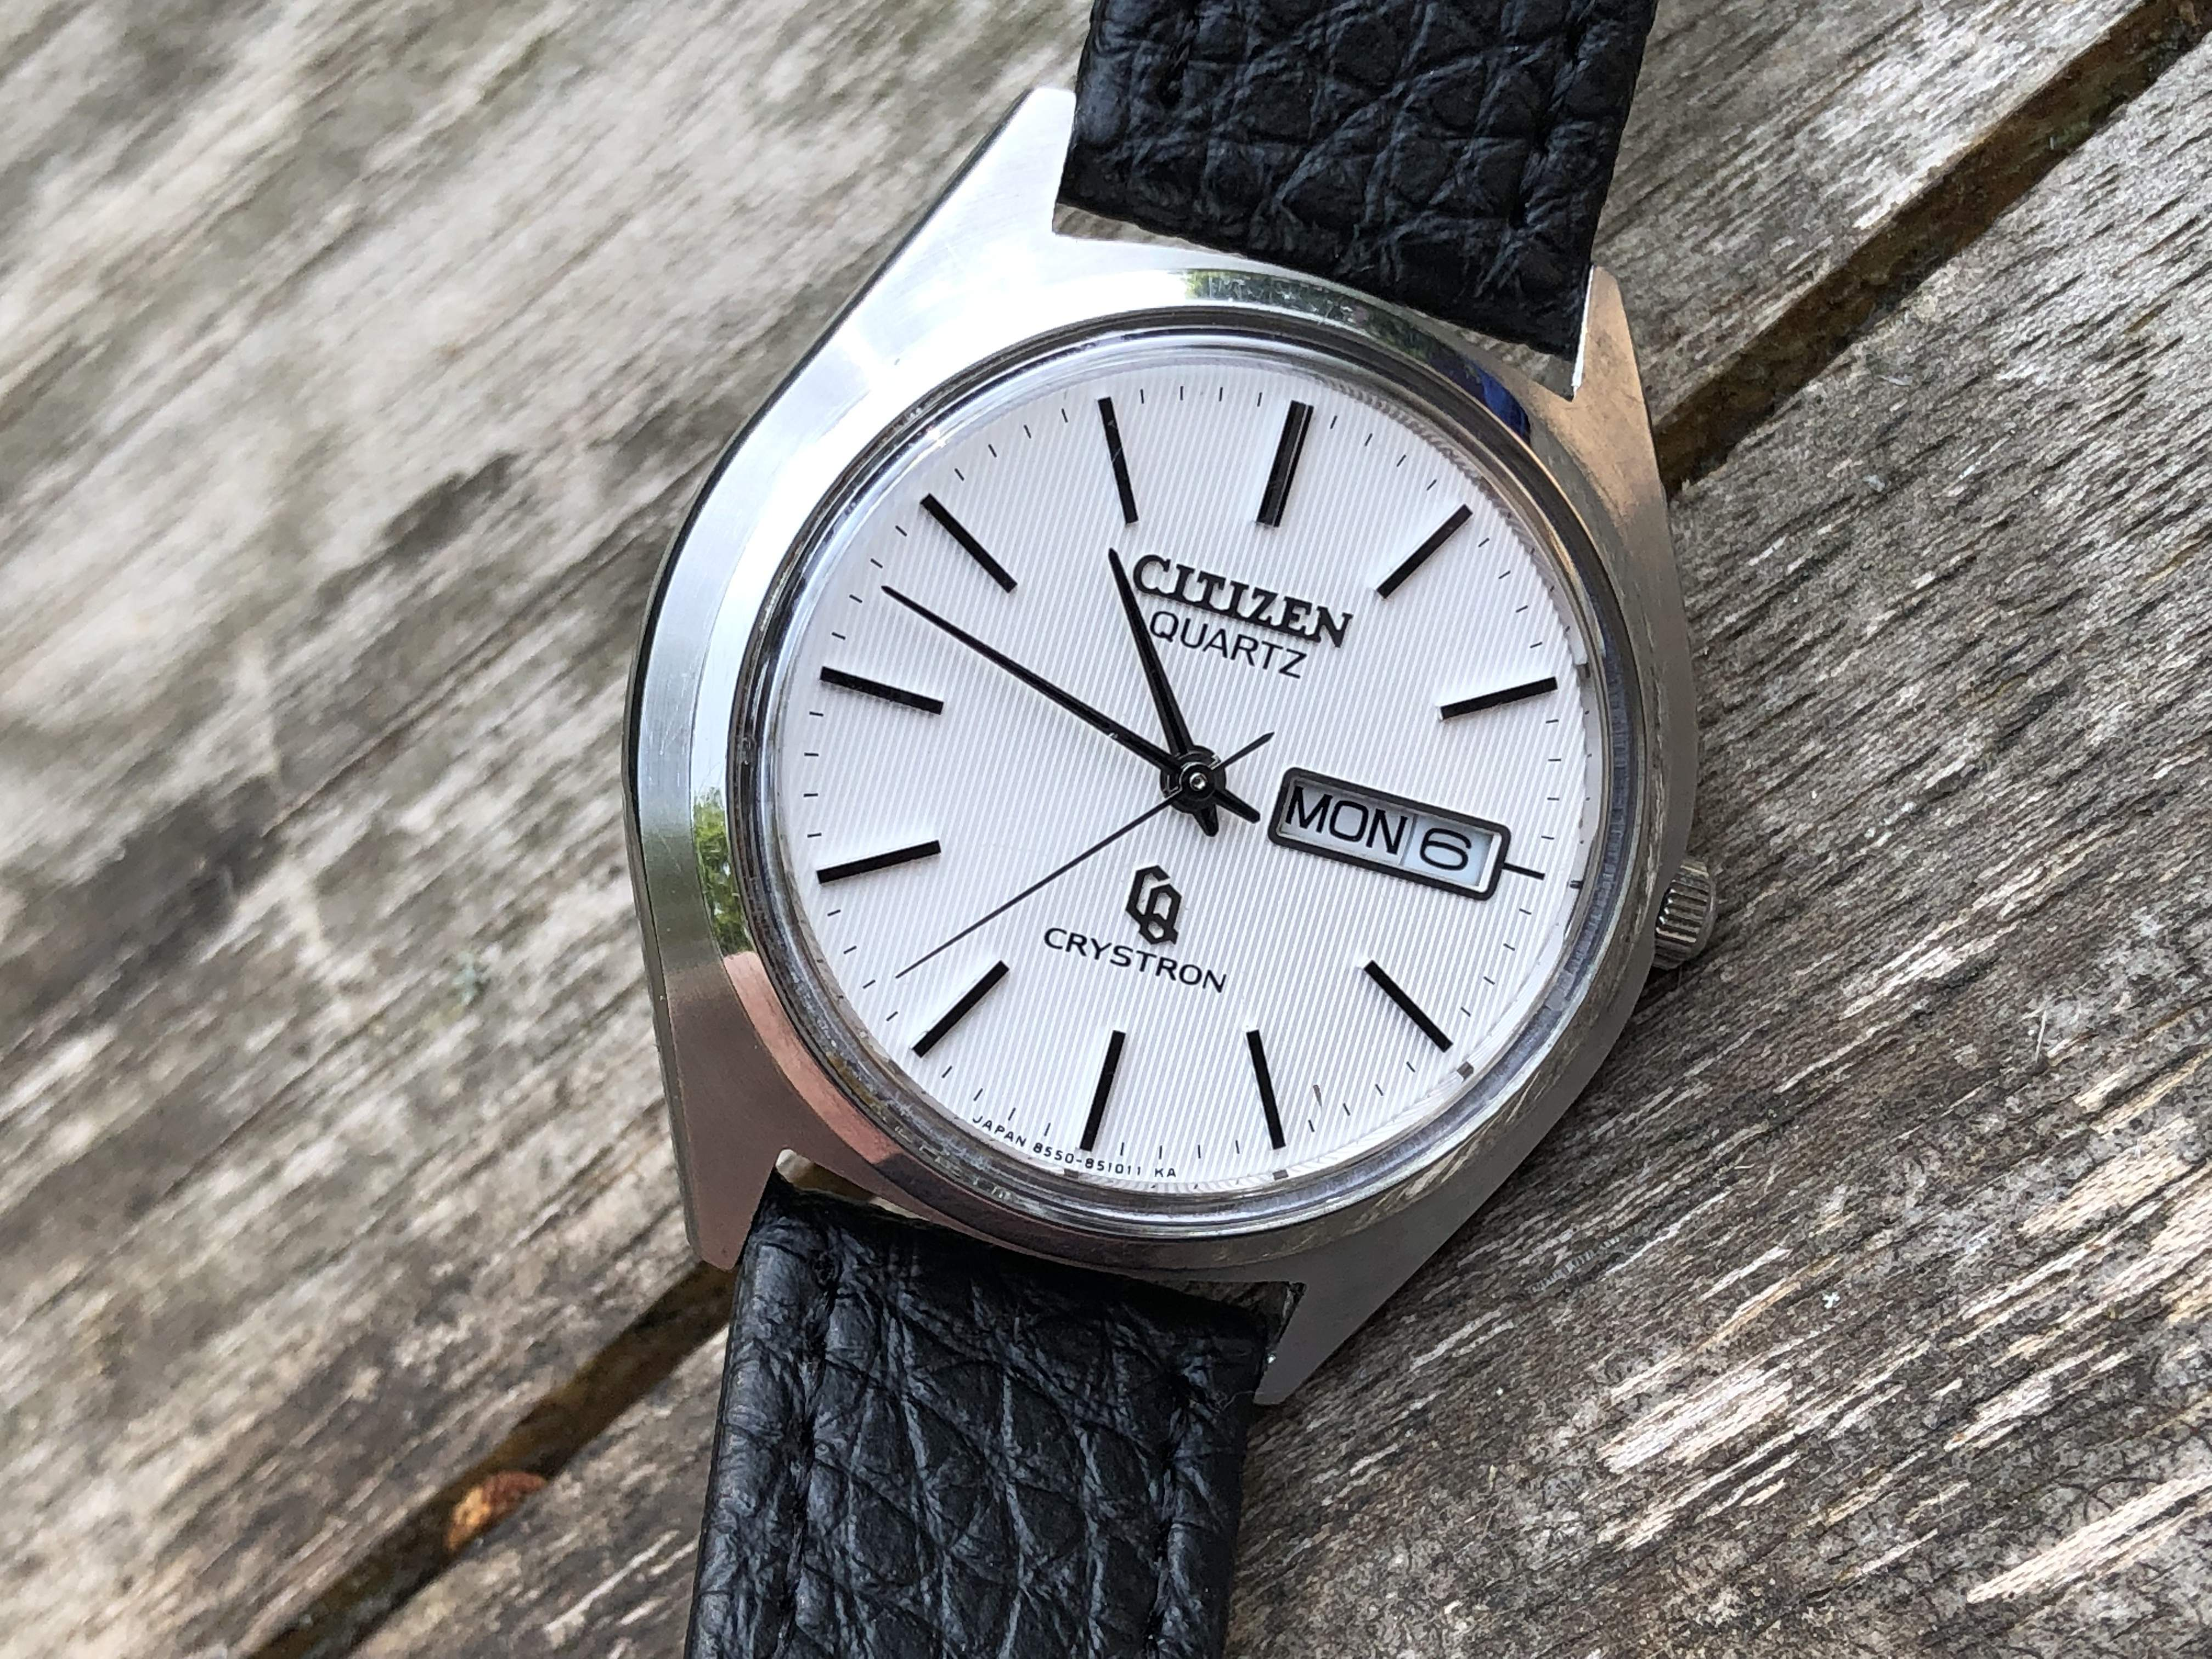 Citizen Crystron 4-853601TA running +10 spm! (For sale)